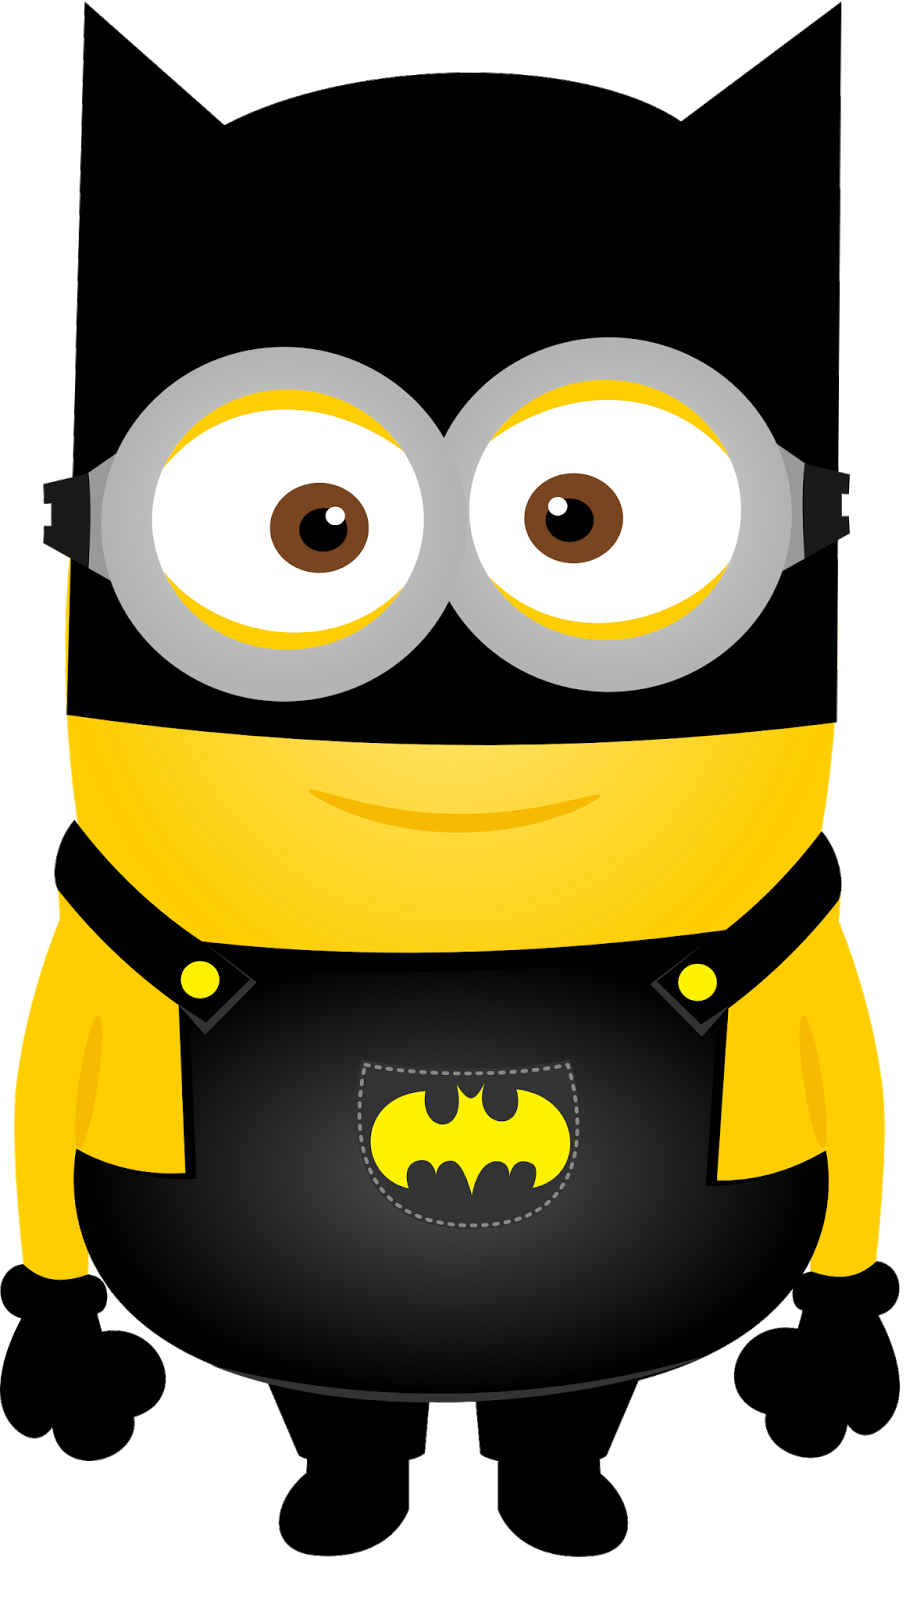 Minions clipart purple minion.  s heroes pinterest